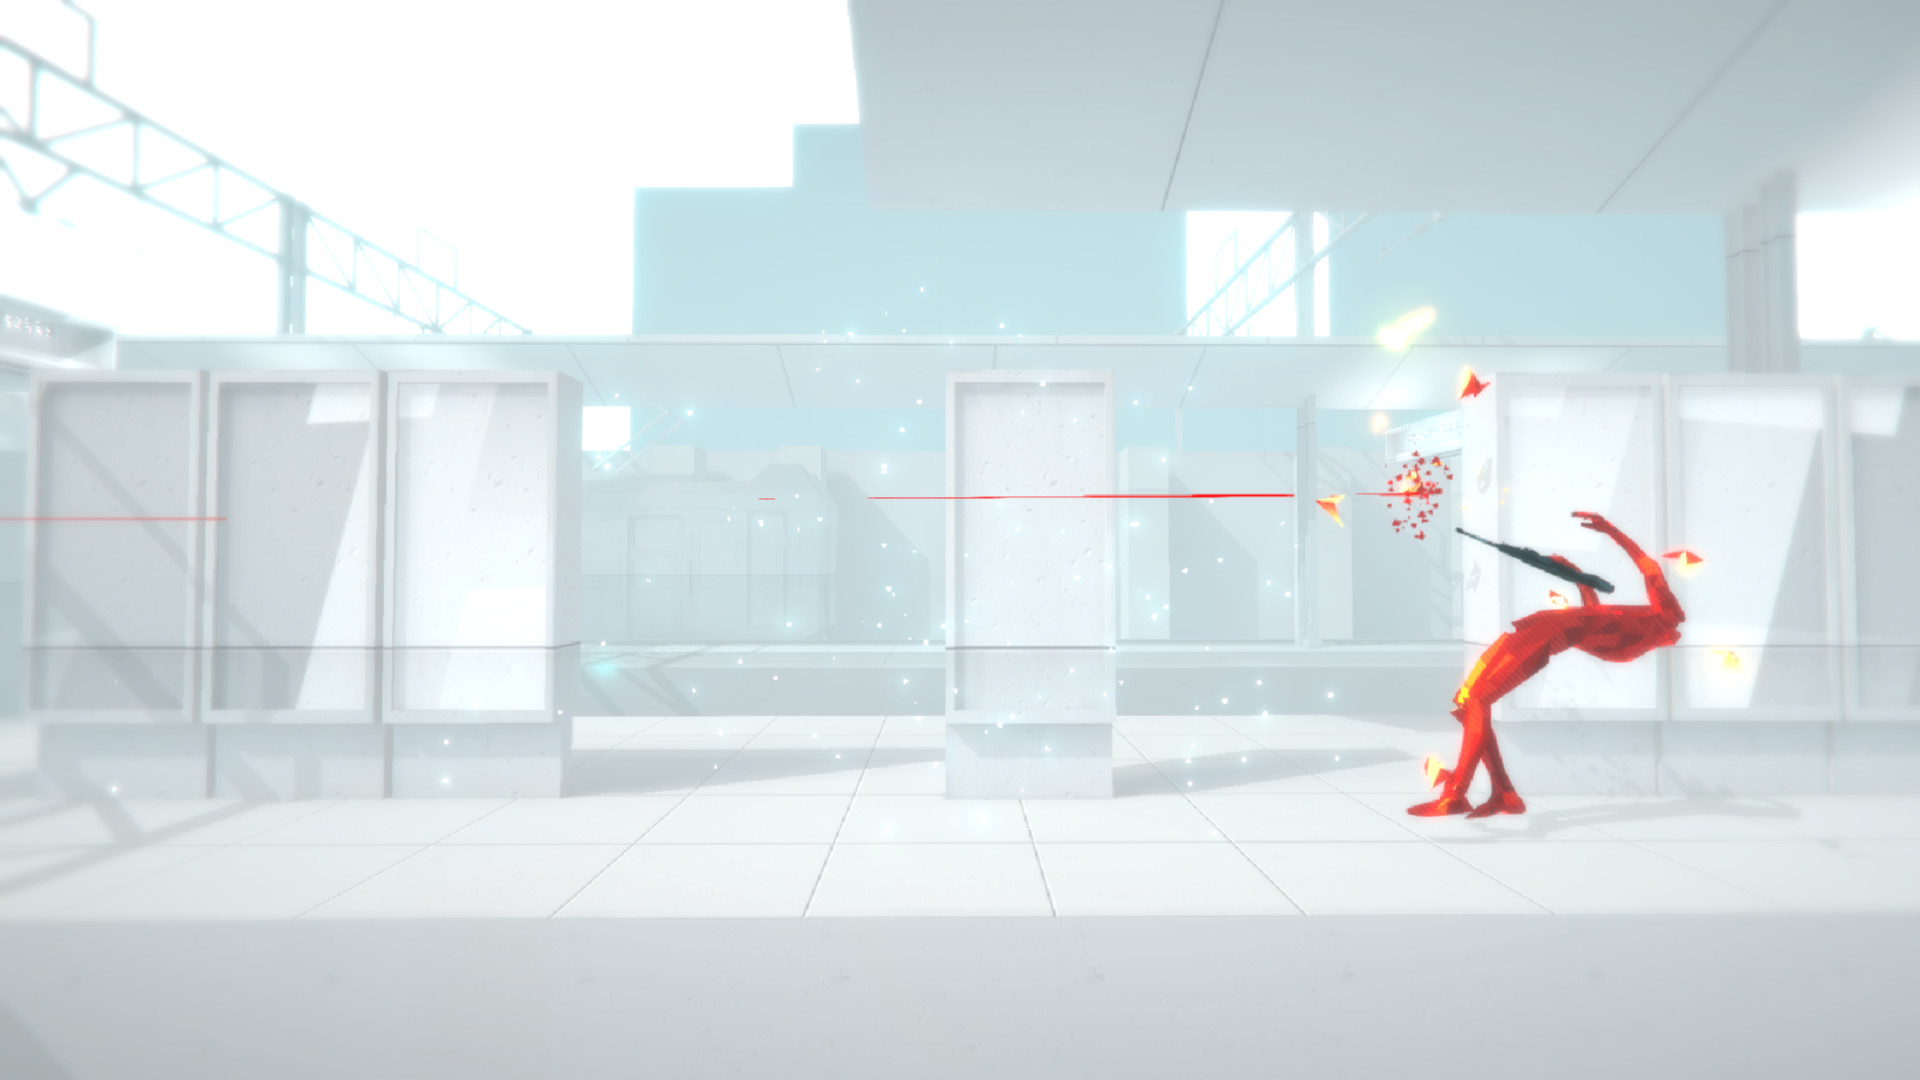 Superhot developer on Switch port: 'I think it should happen' screenshot